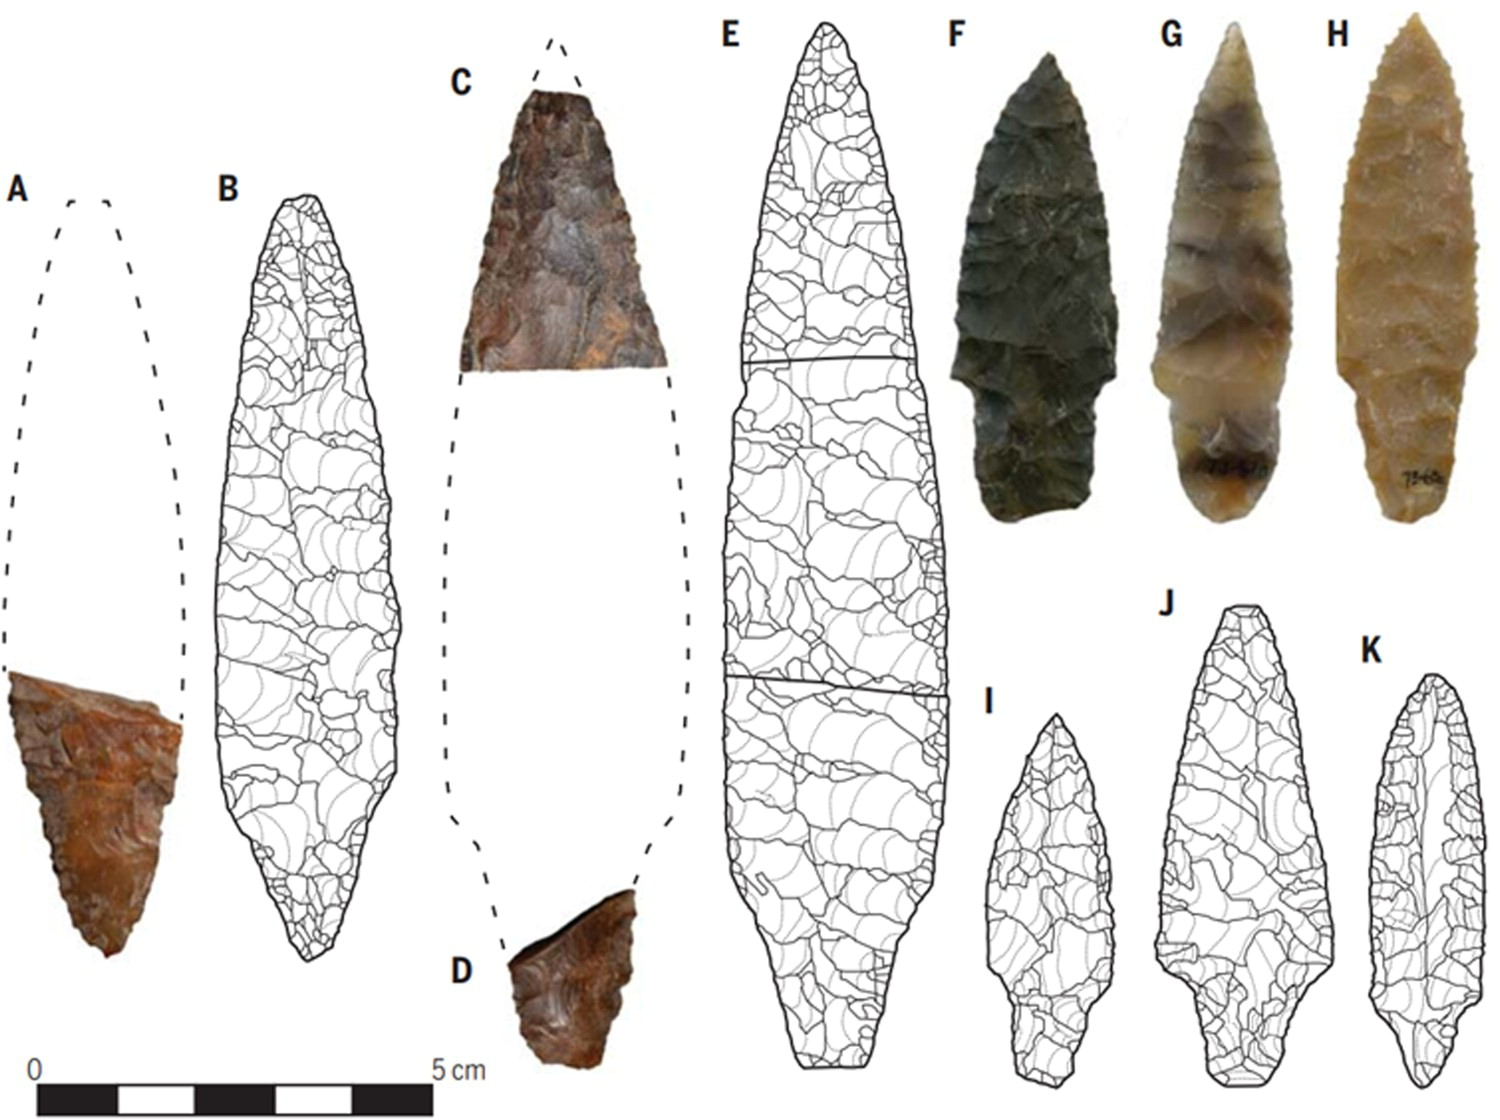 Comparison between Cooper's Ferry projectile points (A, C, F, G, H) and projectile points from the Kamishiritaki 2 site. Scientists believe that the human settlement of America did not pass through Japan. Credit: Richard Scott et al. / PaleoAmerica, 2021